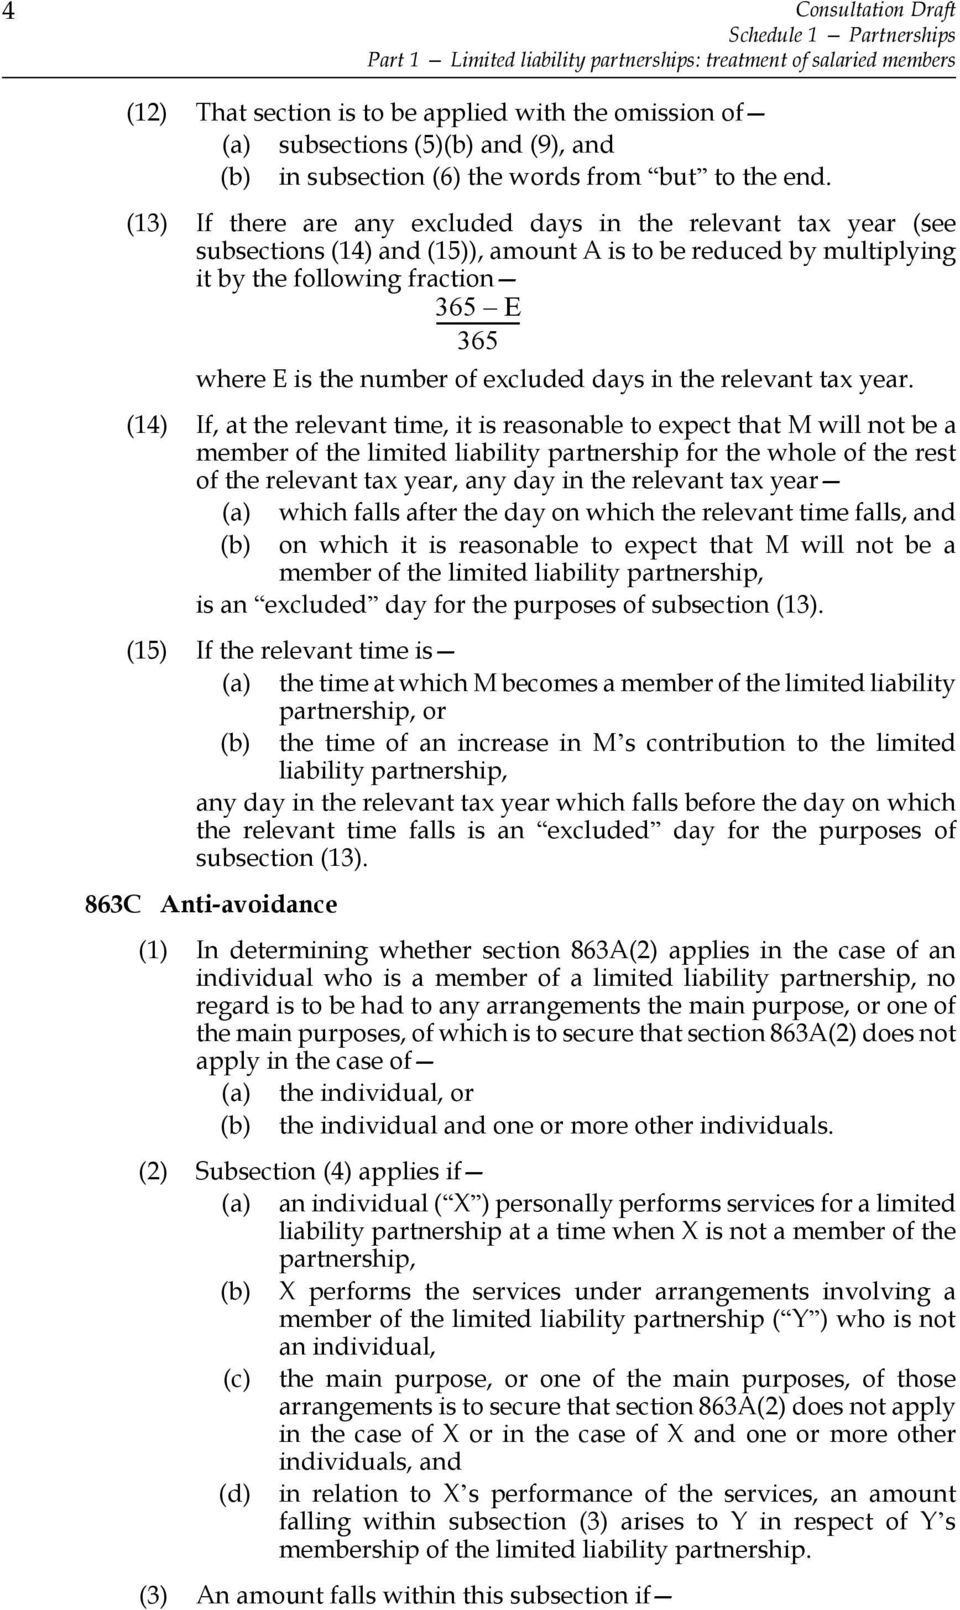 (13) If there are any excluded days in the relevant tax year (see subsections (14) and (15)), amount A is to be reduced by multiplying it by the following fraction 365 ----------------- E 365 where E